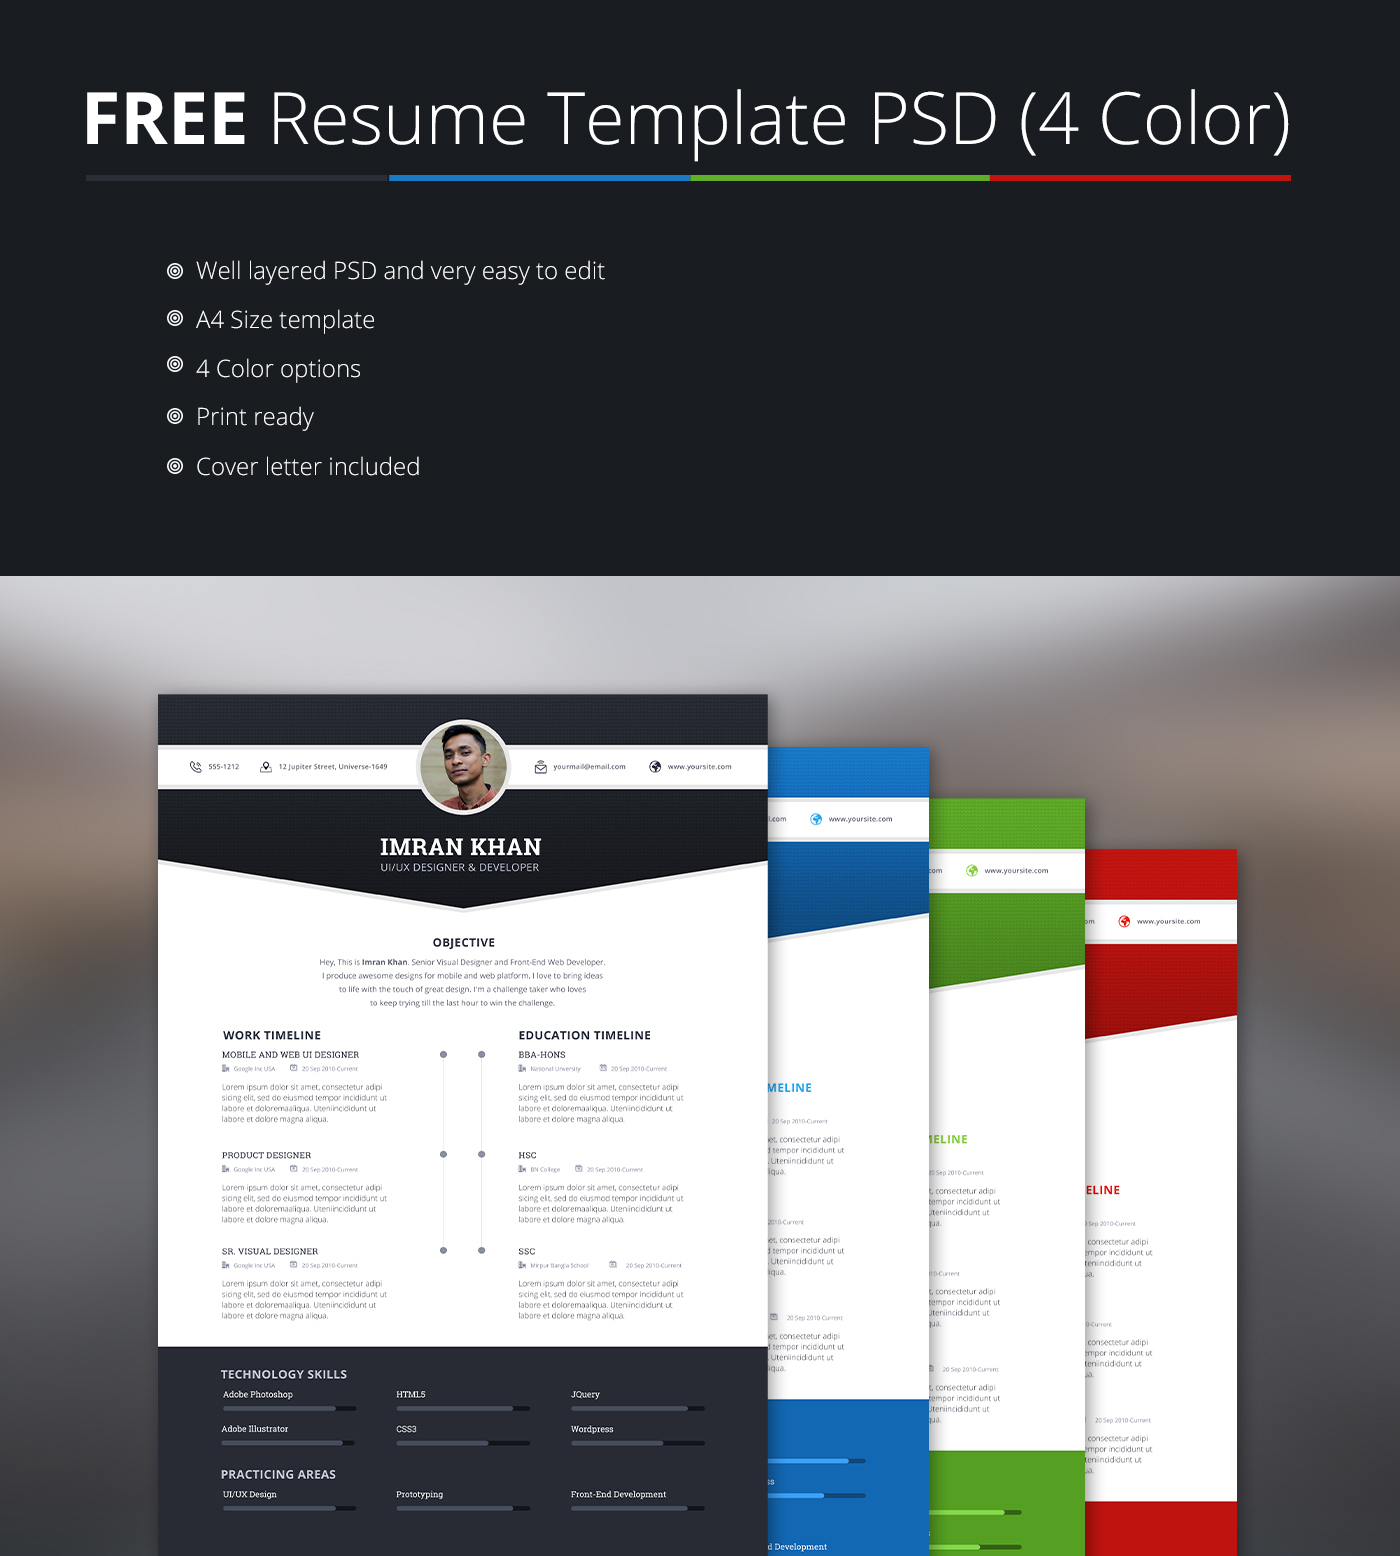 download your copy - Downloadable Free Resume Templates